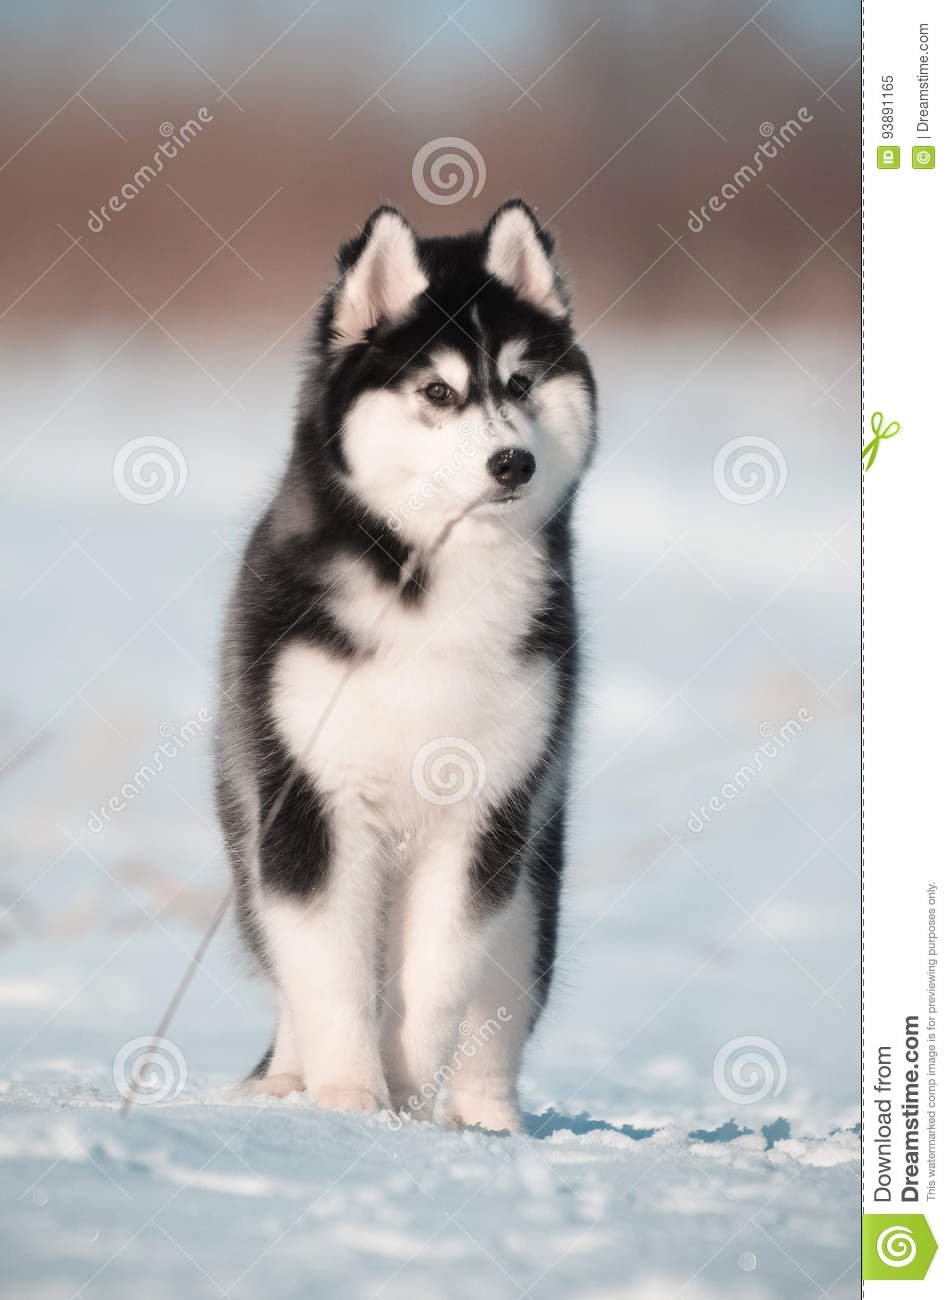 Siberian Husky Dog Puppy Black And White Portrait In The Snow Meadow